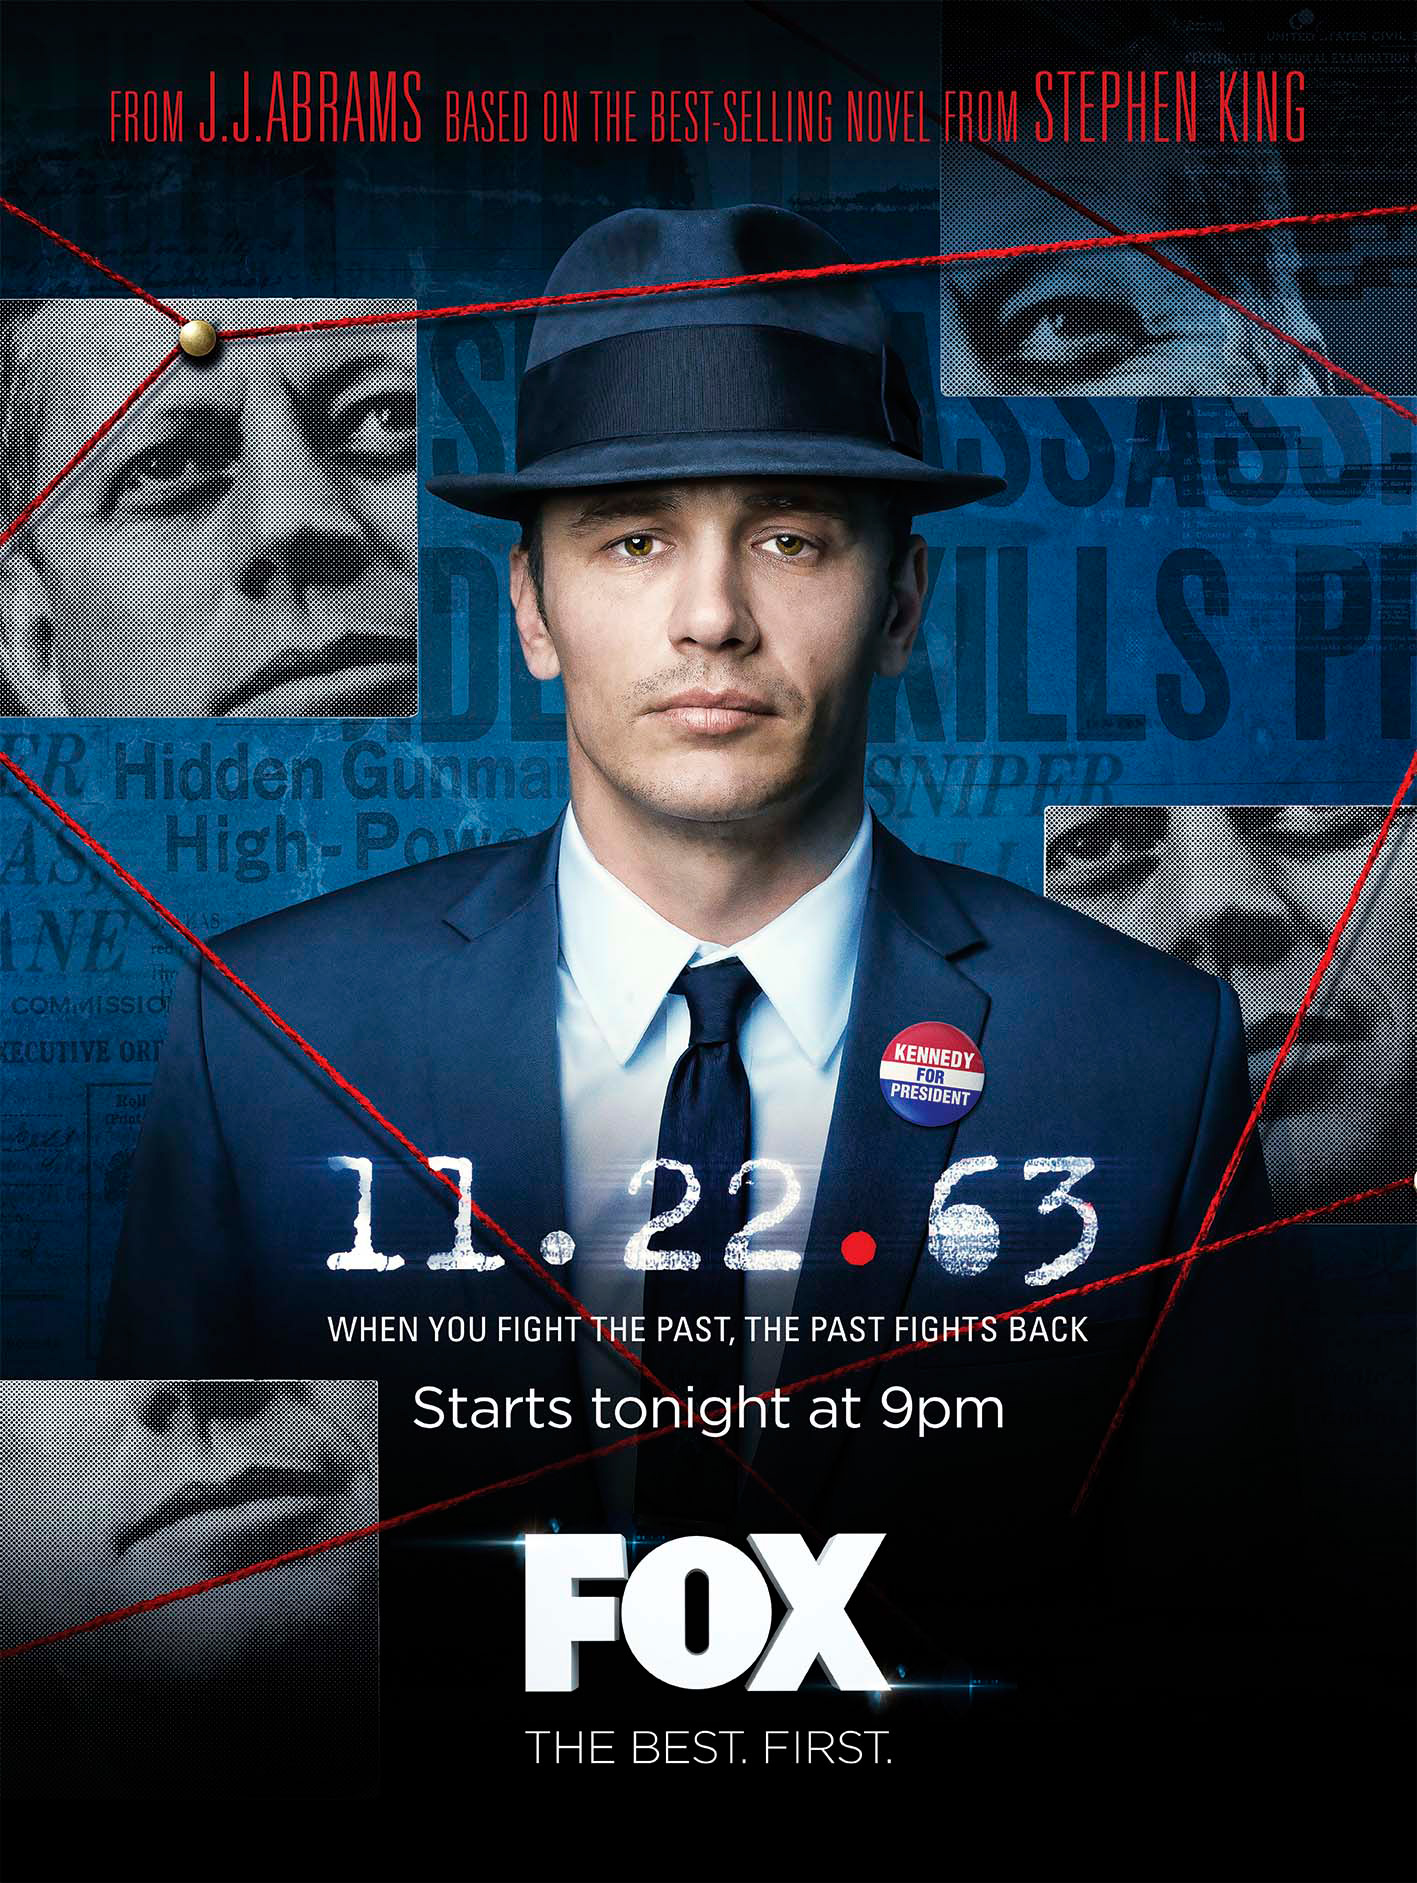 FOX_11.22.63_VERTICAL_KAWT